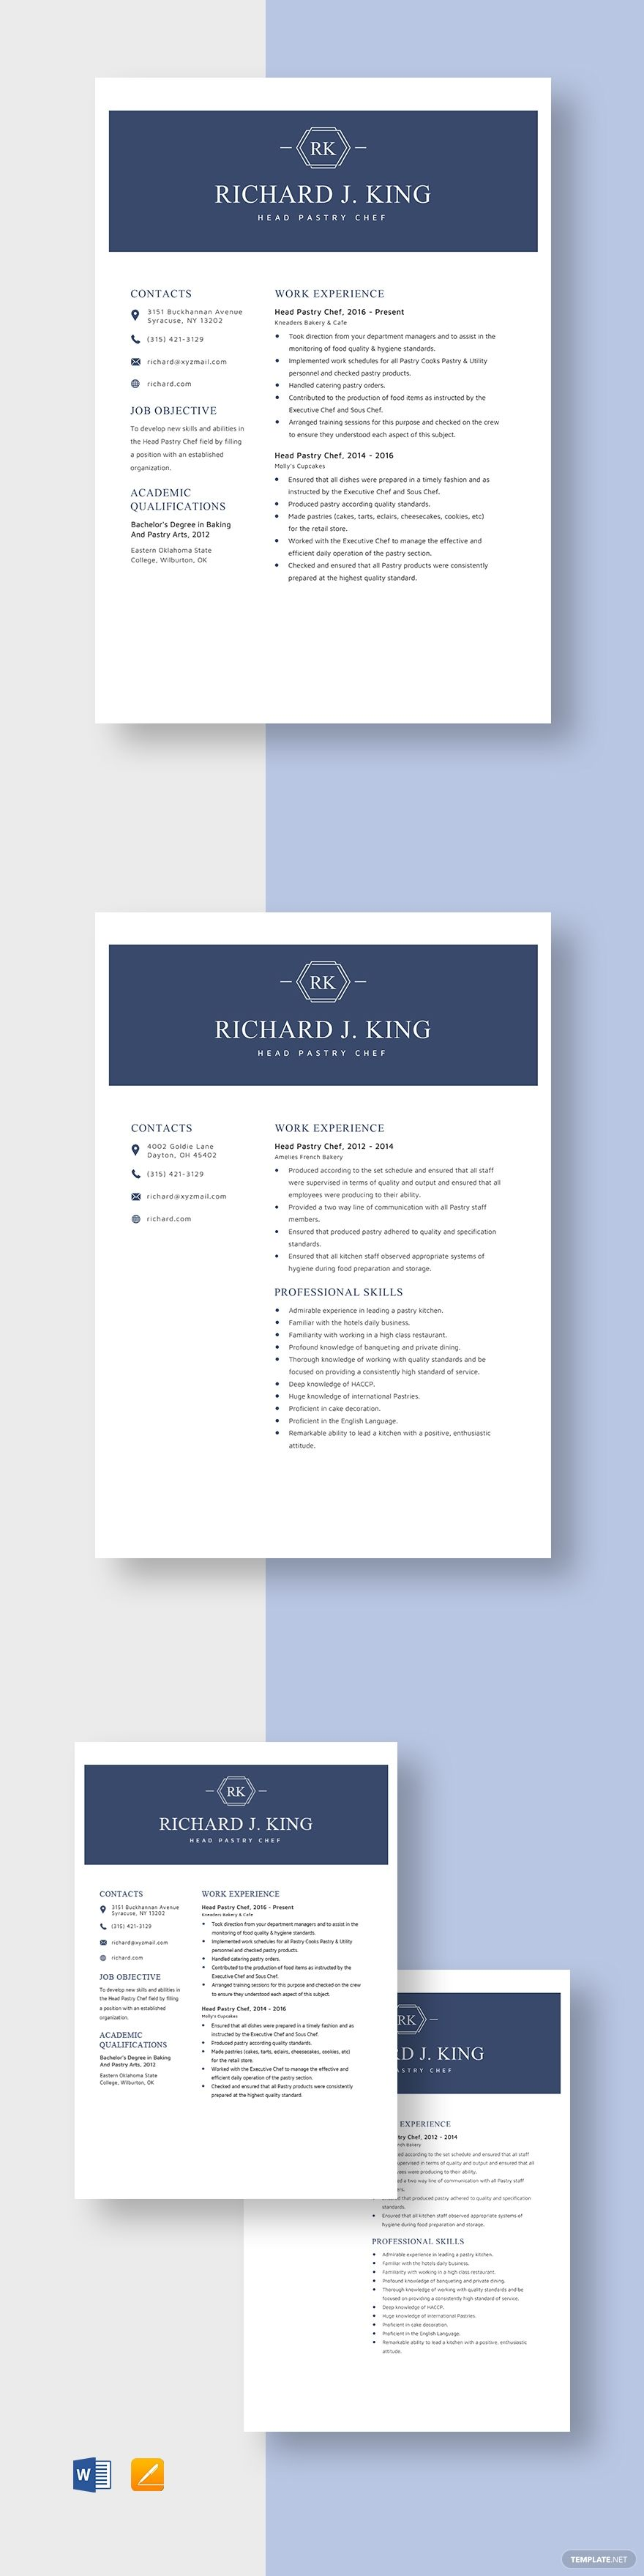 Head Pastry Chef Resume Template AD, , Ad, Pastry,